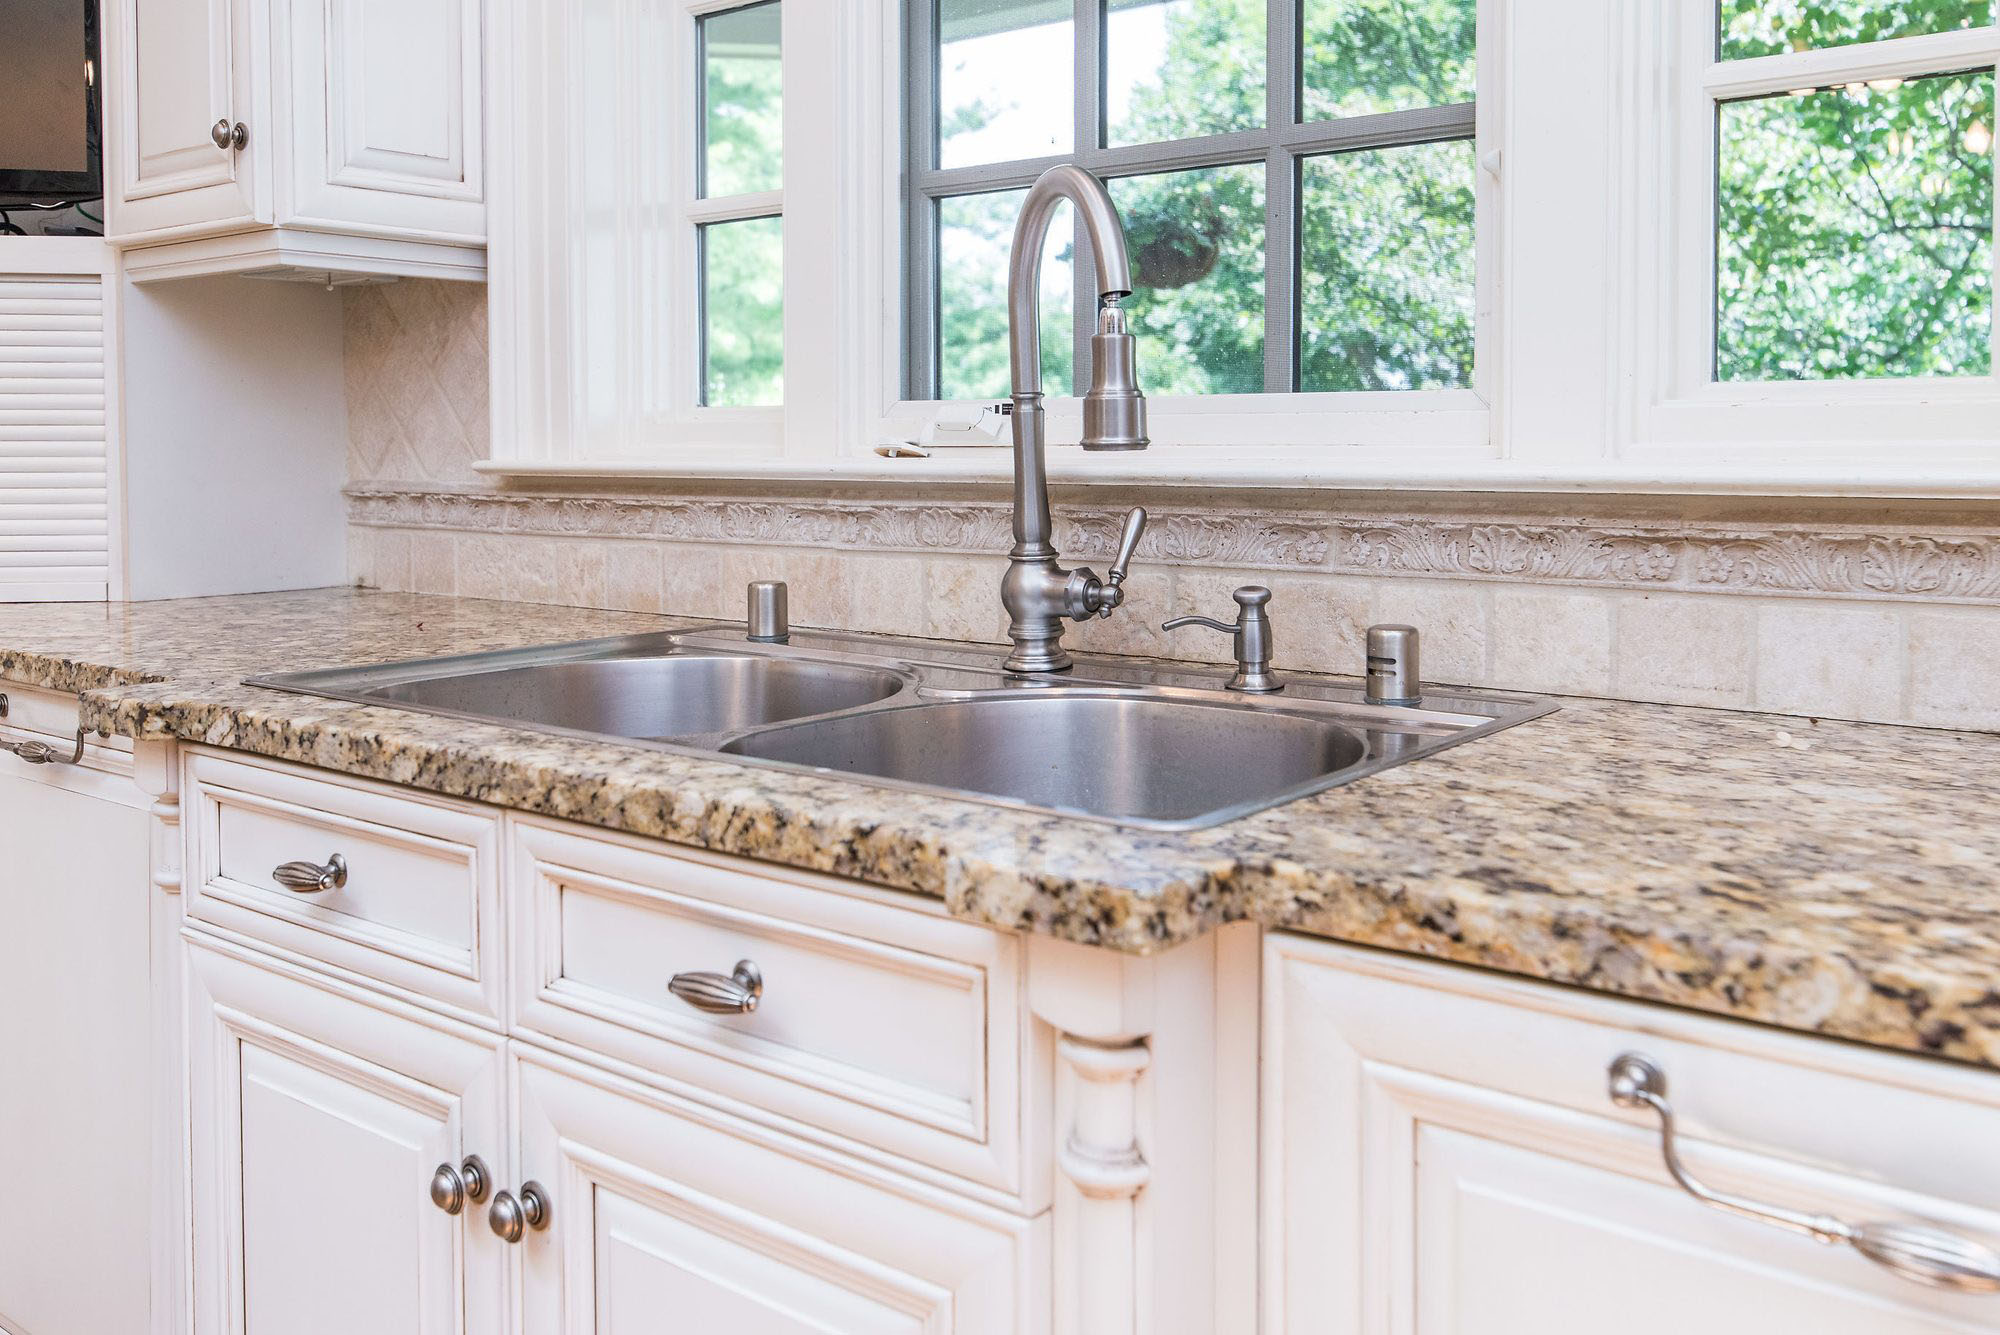 Closeup view of a stainless steel double basin sink on granite countertops.